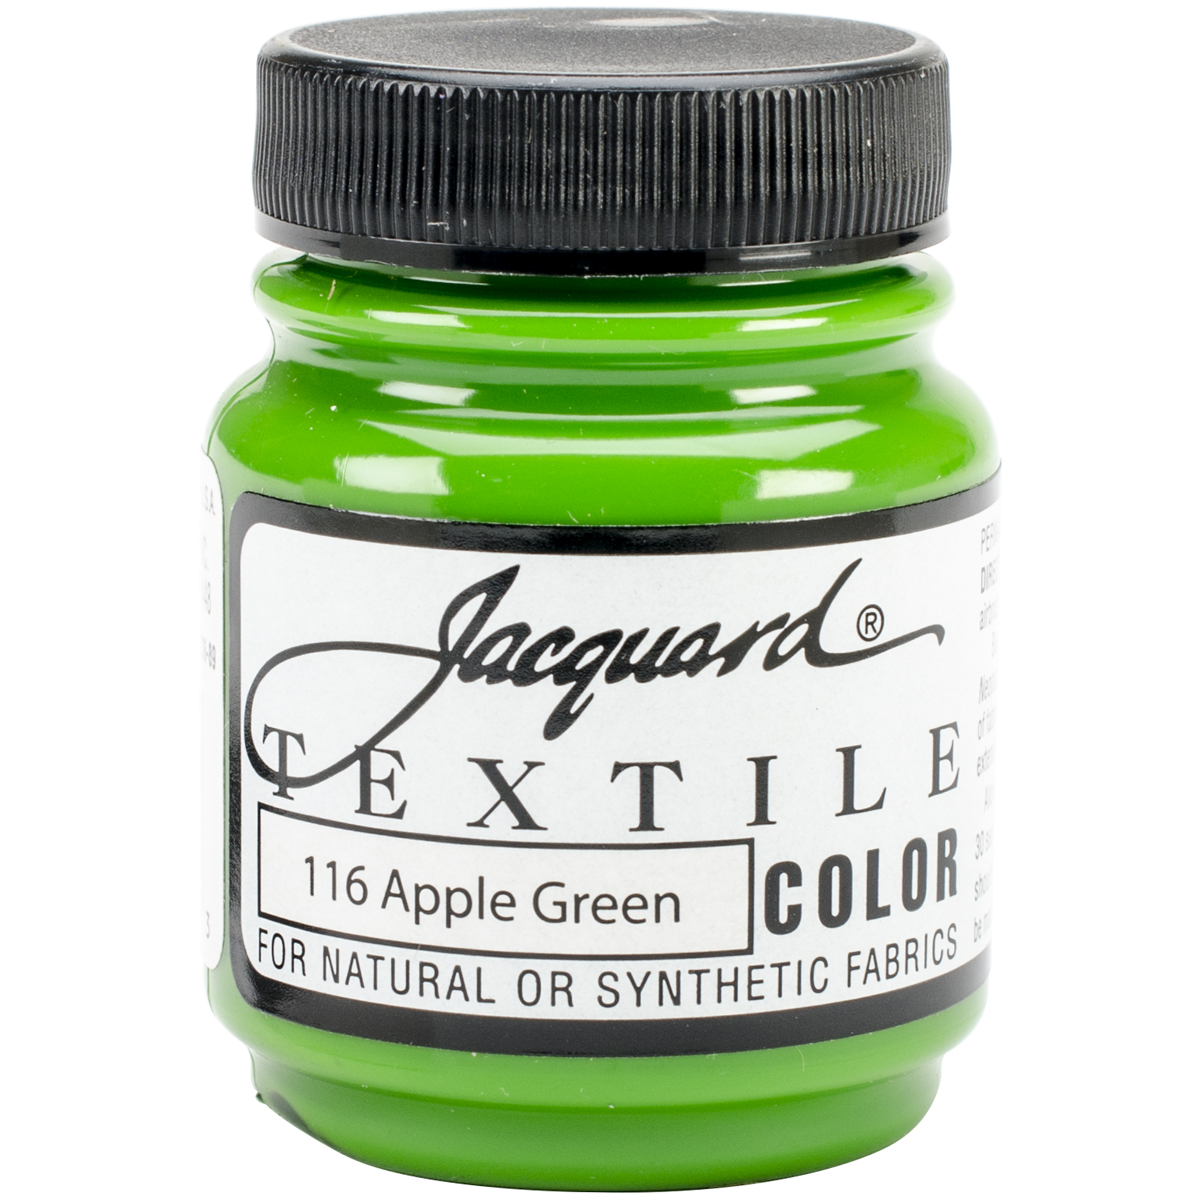 Jacquard Products Textile Color Fabric Paint 2.25-Ounce, Apple Green Multi-Colored